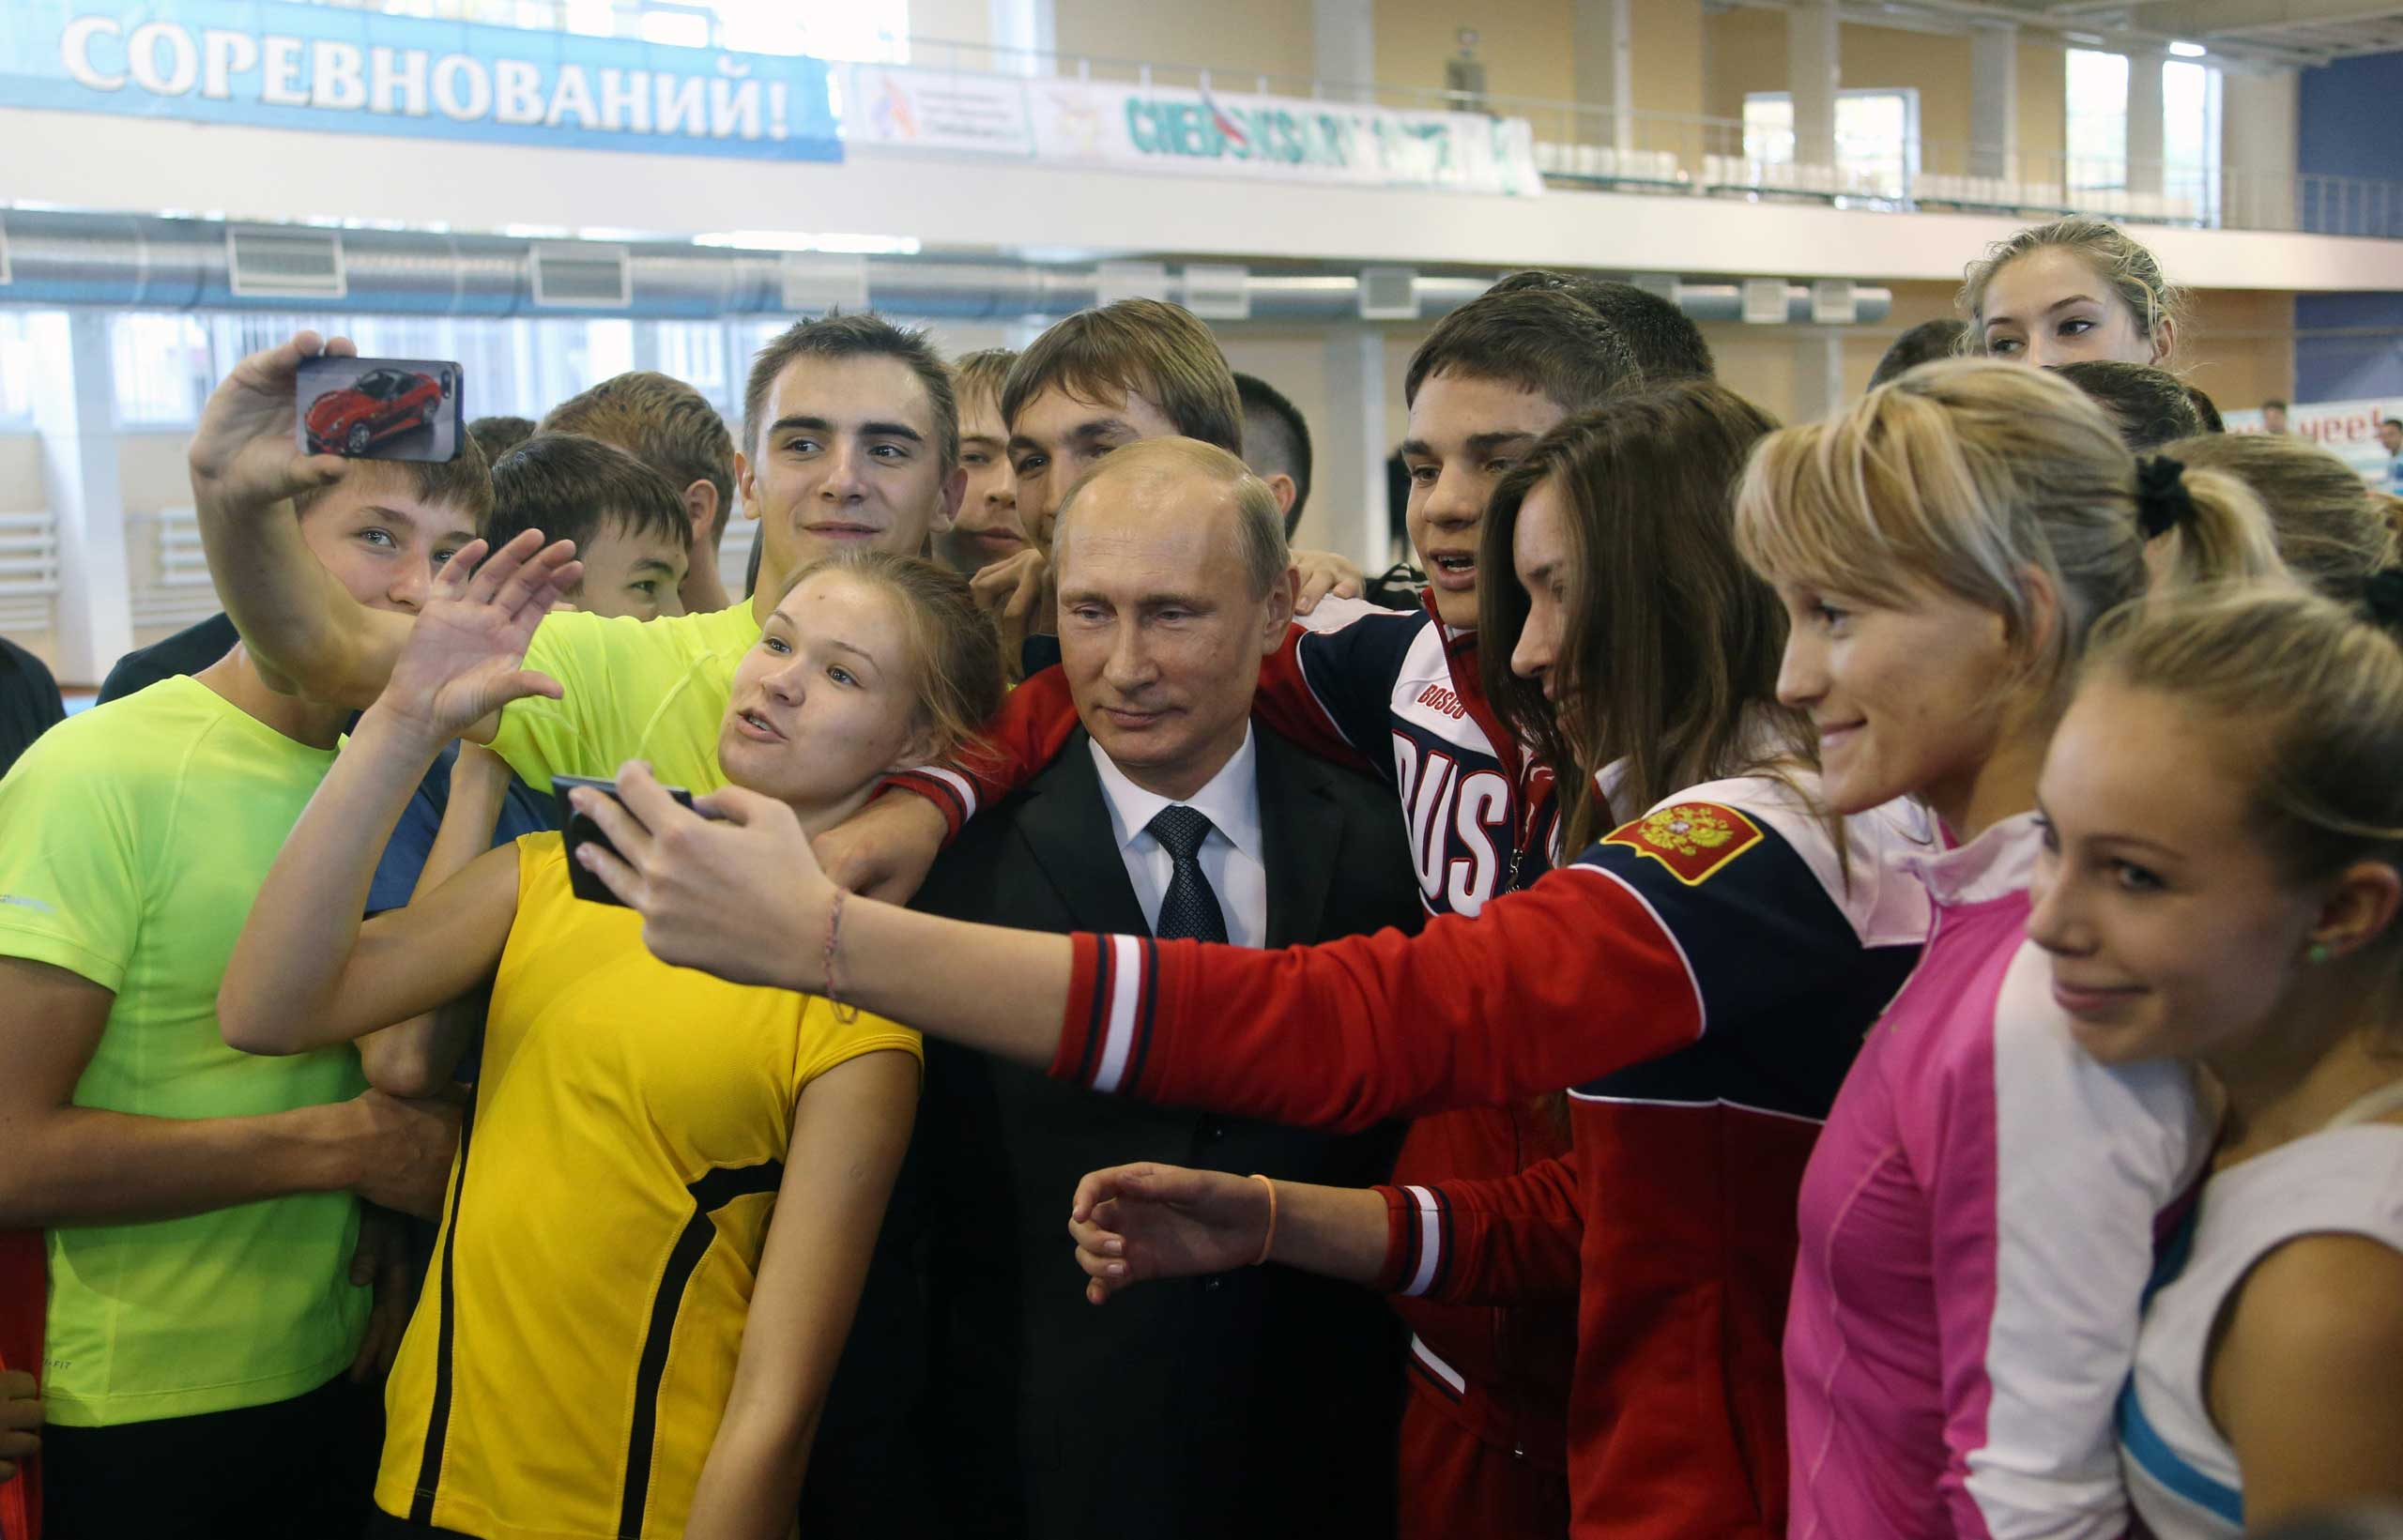 Oct. 9, 2014. Russian President Vladimir Putin poses for a photo surrounded by teenage athletes as he attends a meeting with officials, ministers and governors on sport development in Cheboksary, Russia.